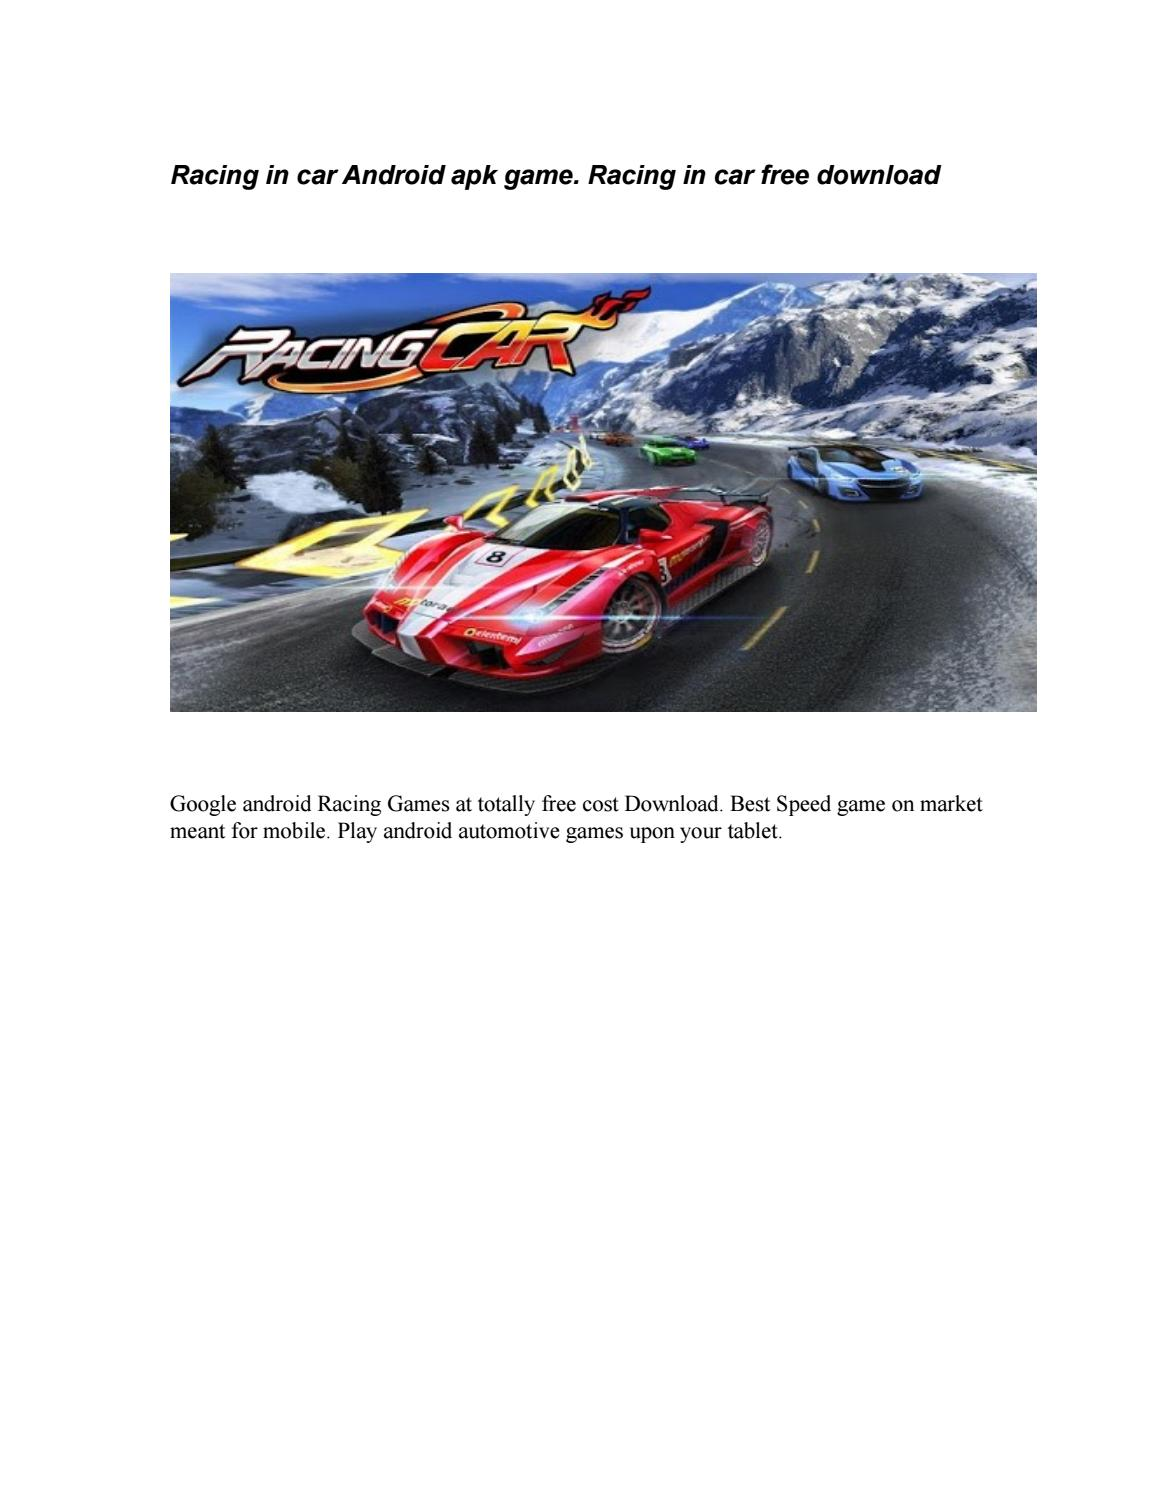 best racing game for android apk